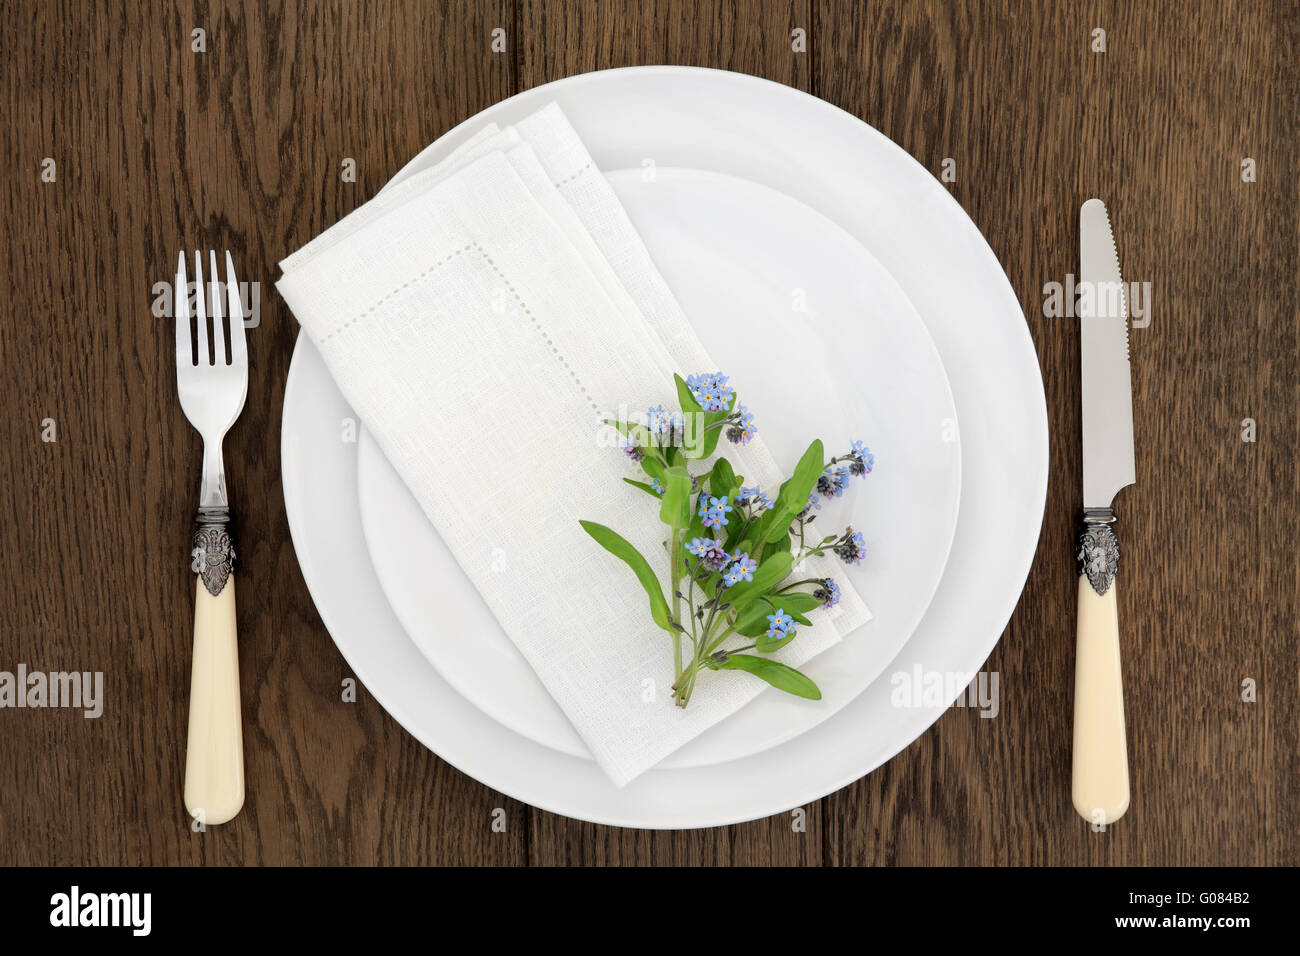 Dinner table place setting with forget me not flowers white round porcelain dishes and linen napkin with antique cutlery. & Dinner table place setting with forget me not flowers white round ...